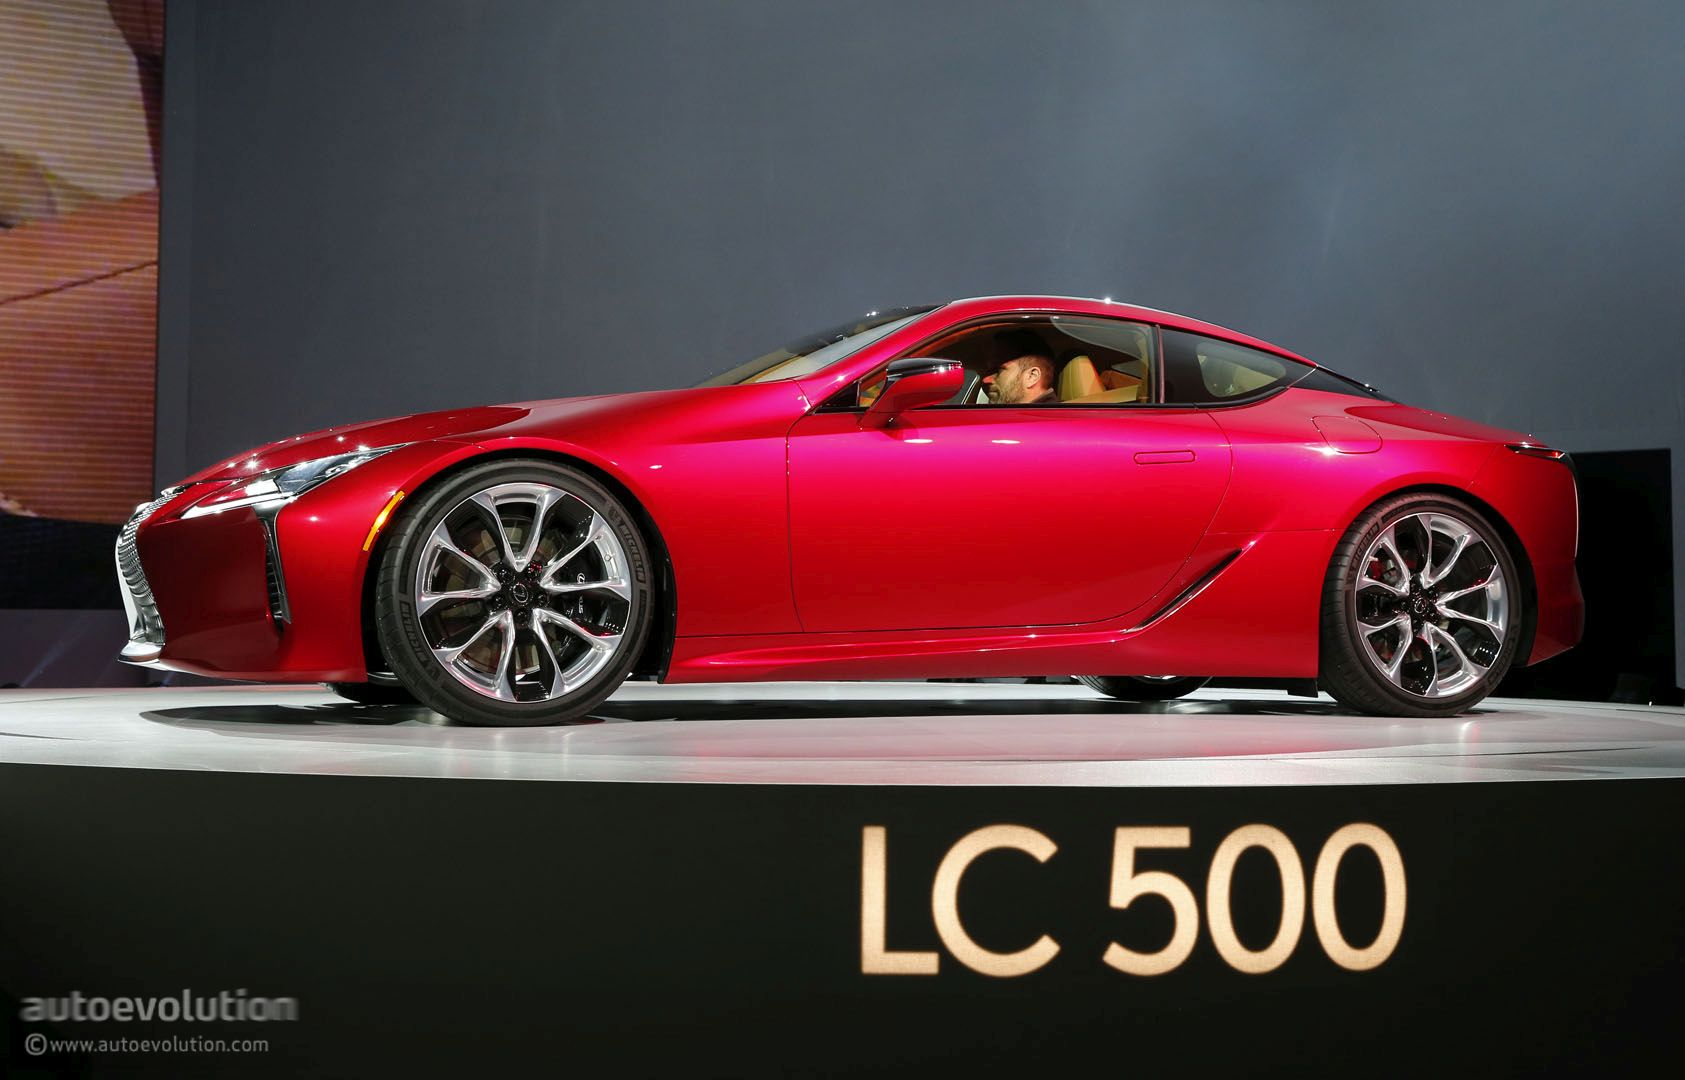 2017 lexus lc 500 hunts down mercedes s class coupe in. Black Bedroom Furniture Sets. Home Design Ideas